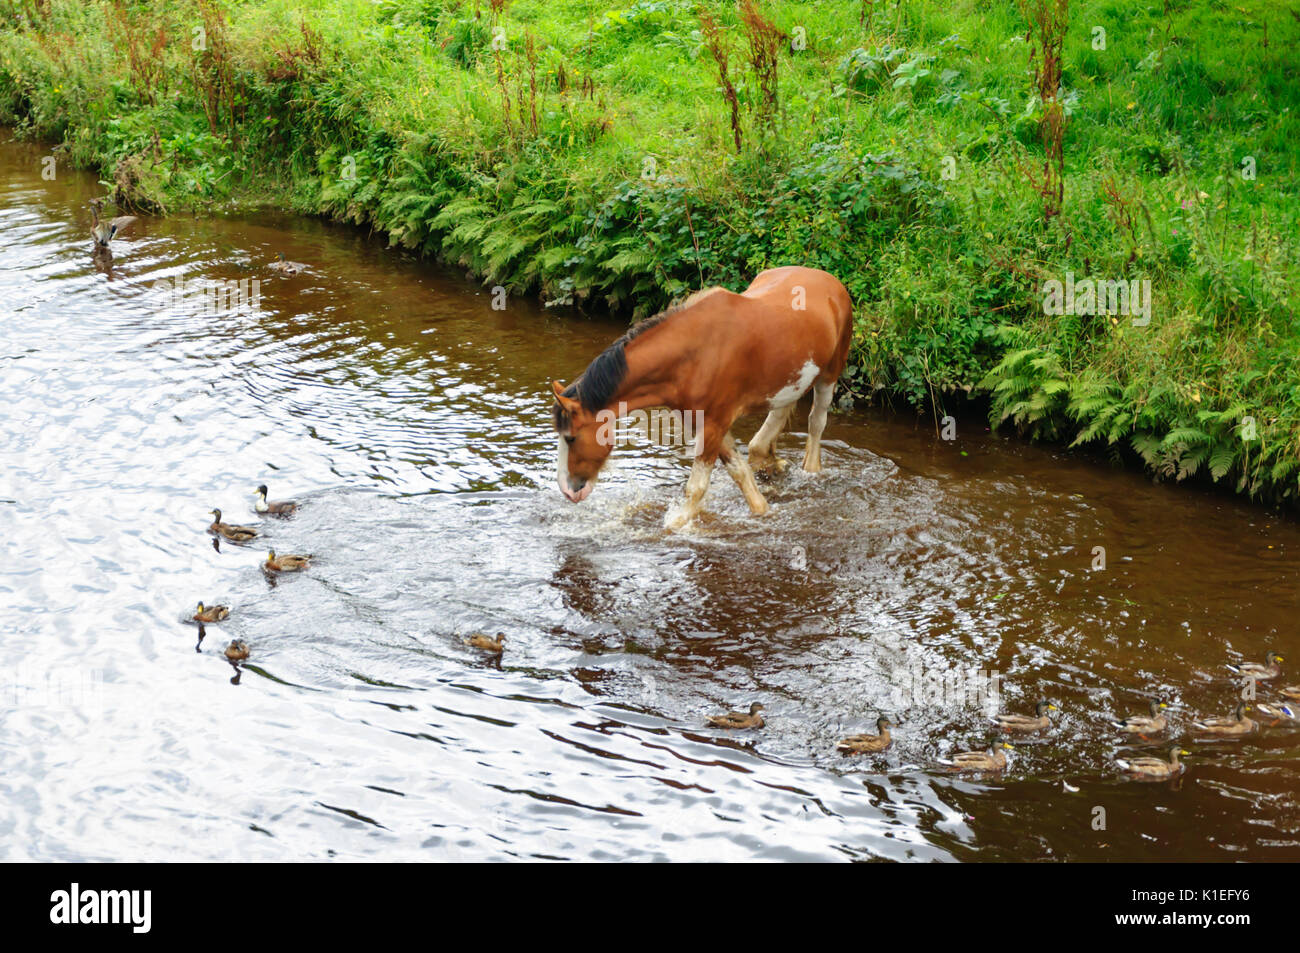 Glasgow, Scotland, UK. 27th August, 2017. UK Weather: Clydesdale horse taking a paddle alongside the ducks in the White Cart Water in the grounds of Pollok Country Park on an afternoon of sunny spells. Credit: Skully/Alamy Live News - Stock Image